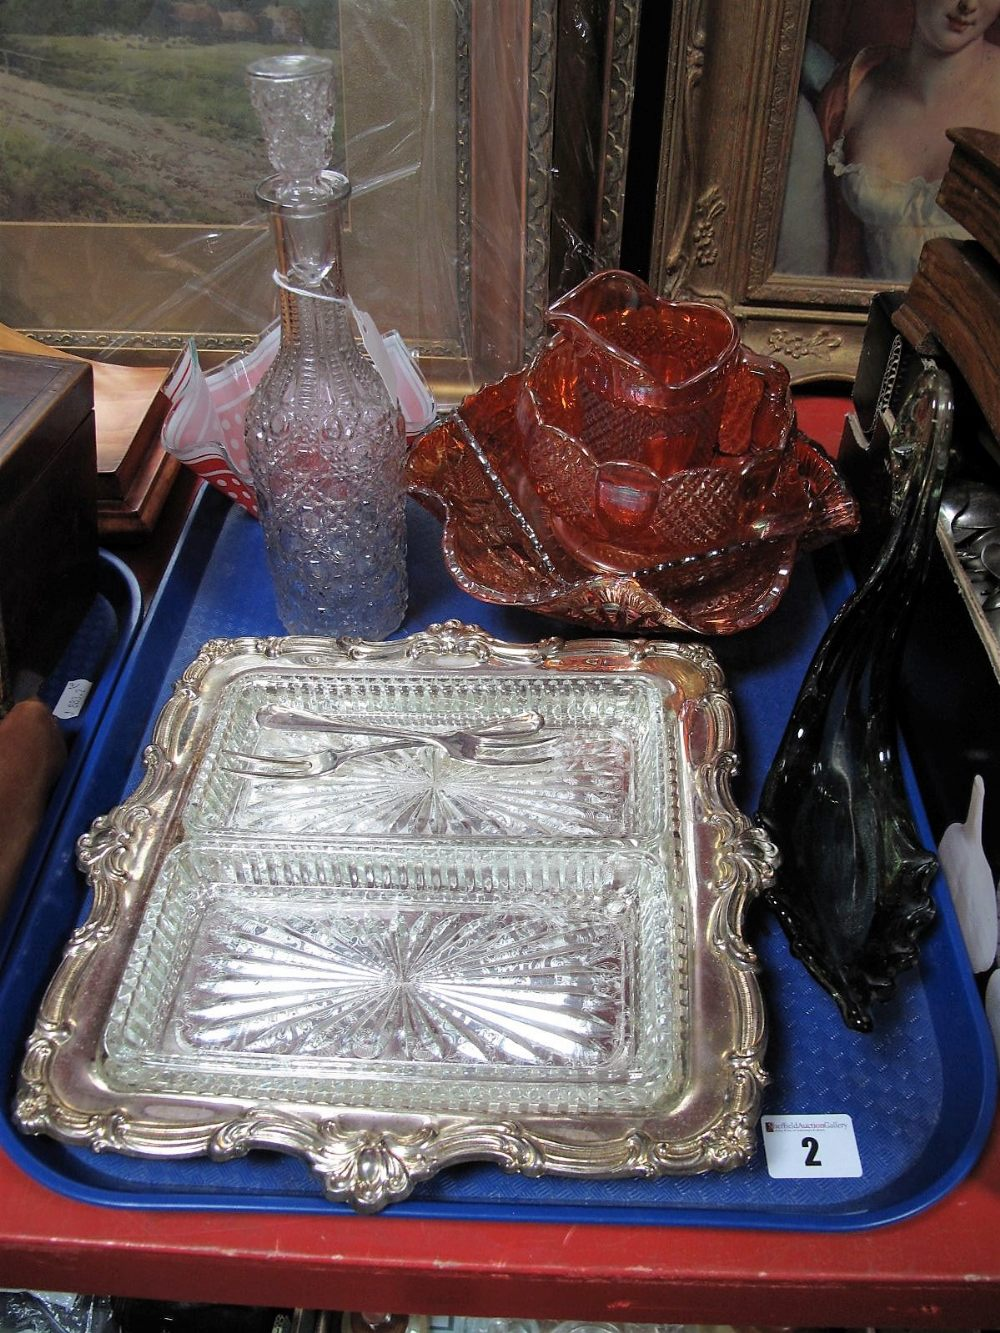 Lot 2 - Hors d'oeuvre's, handkerchief vase, carnival glassware, decanter, swan:- One Tray